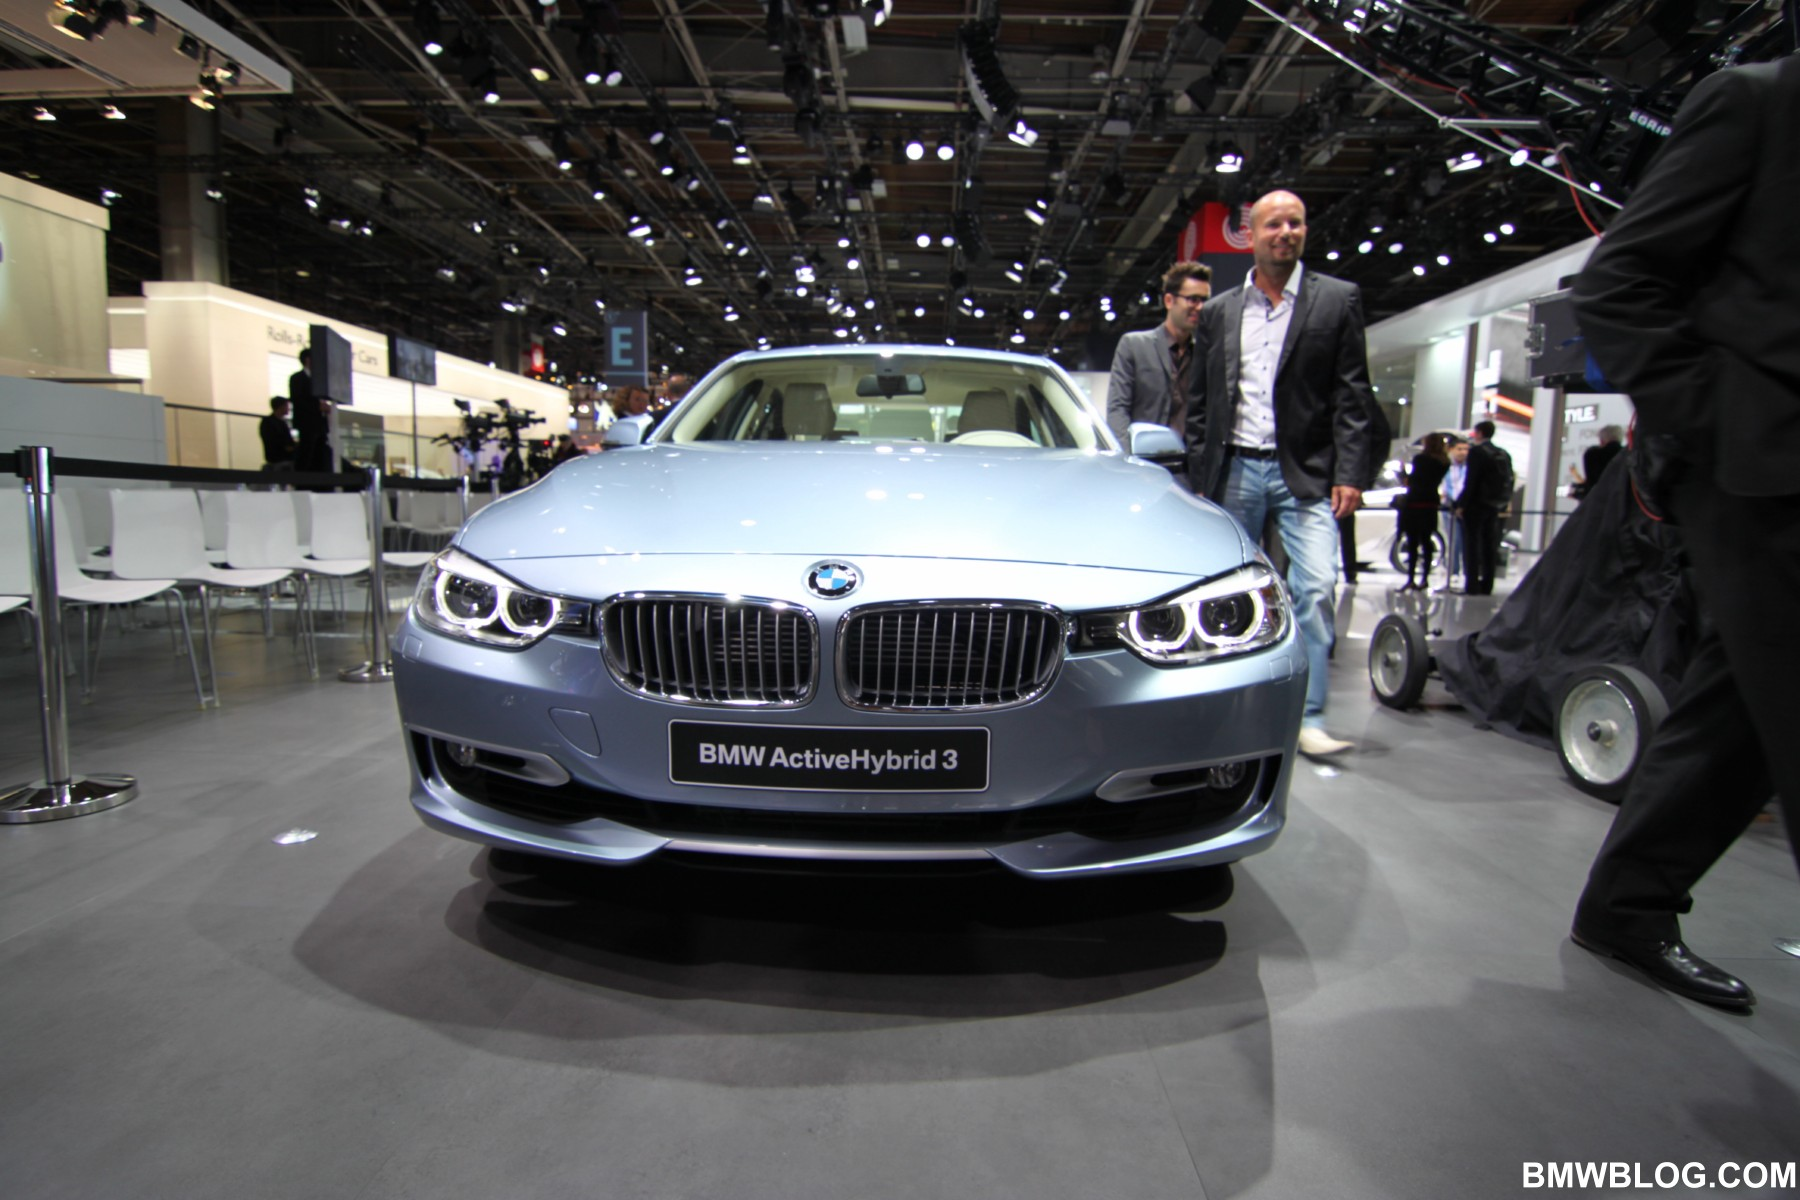 bmw activehybrid 3 at the 2012 paris motor show. Black Bedroom Furniture Sets. Home Design Ideas